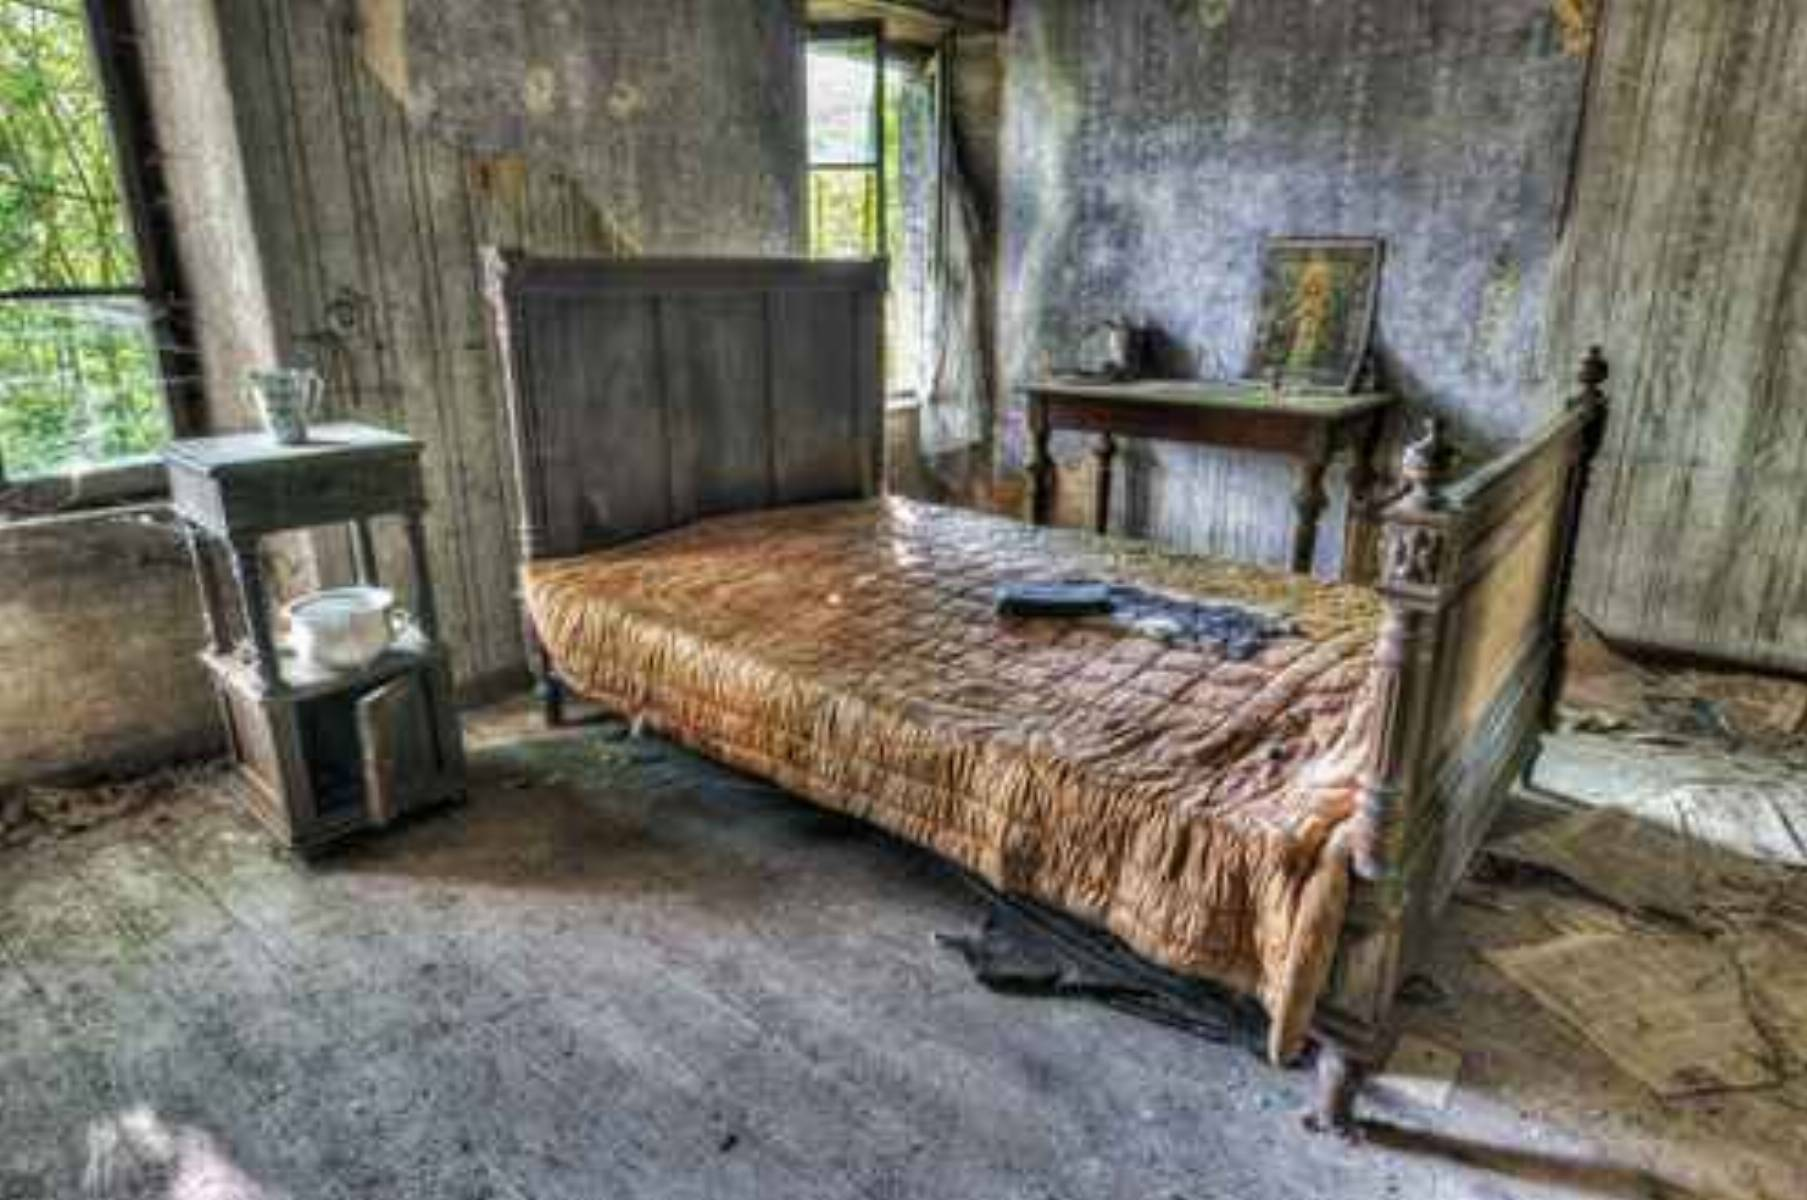 Decayed bedroom in an abandoned house